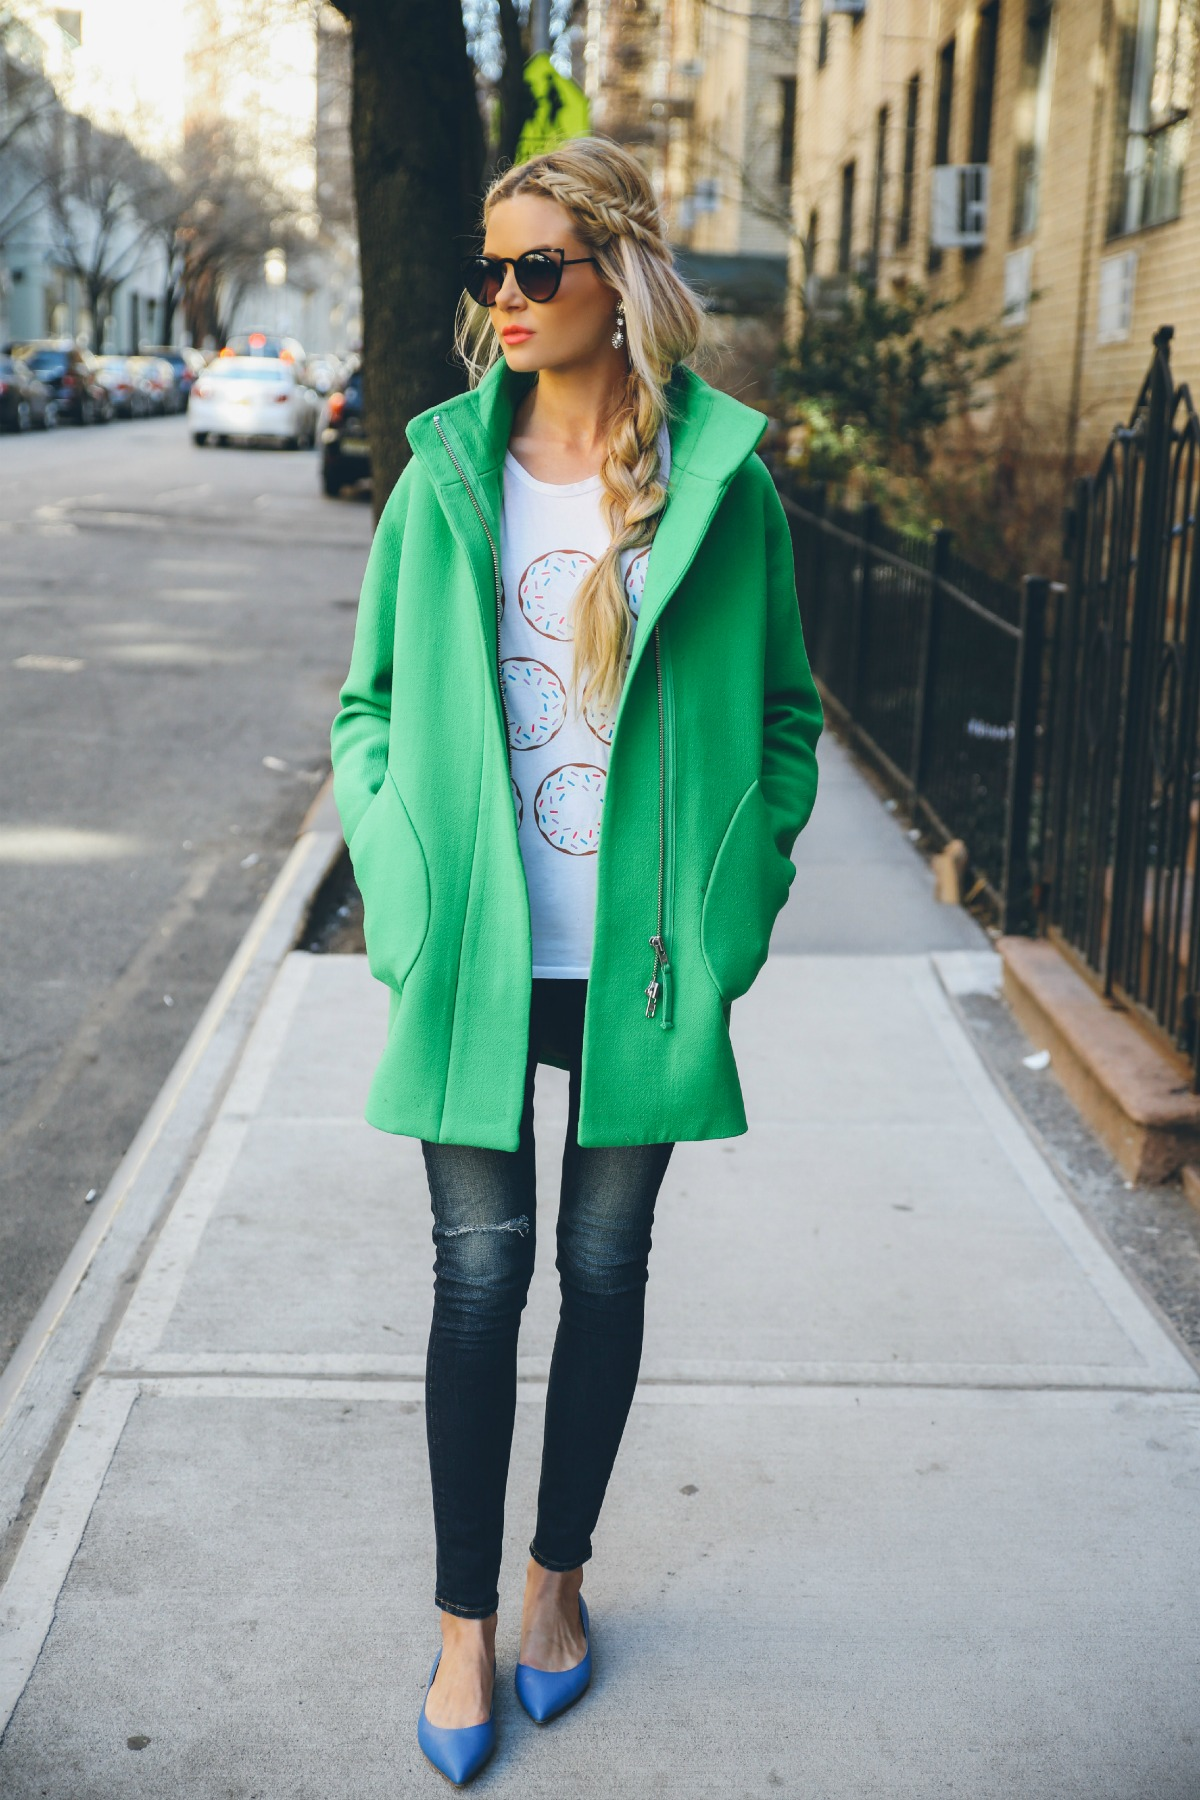 Amber Fillerup Clark is wearing a top from Ily Couture, green coat from J Crew, shoes from M Gemi and the sunglasses are from Quay